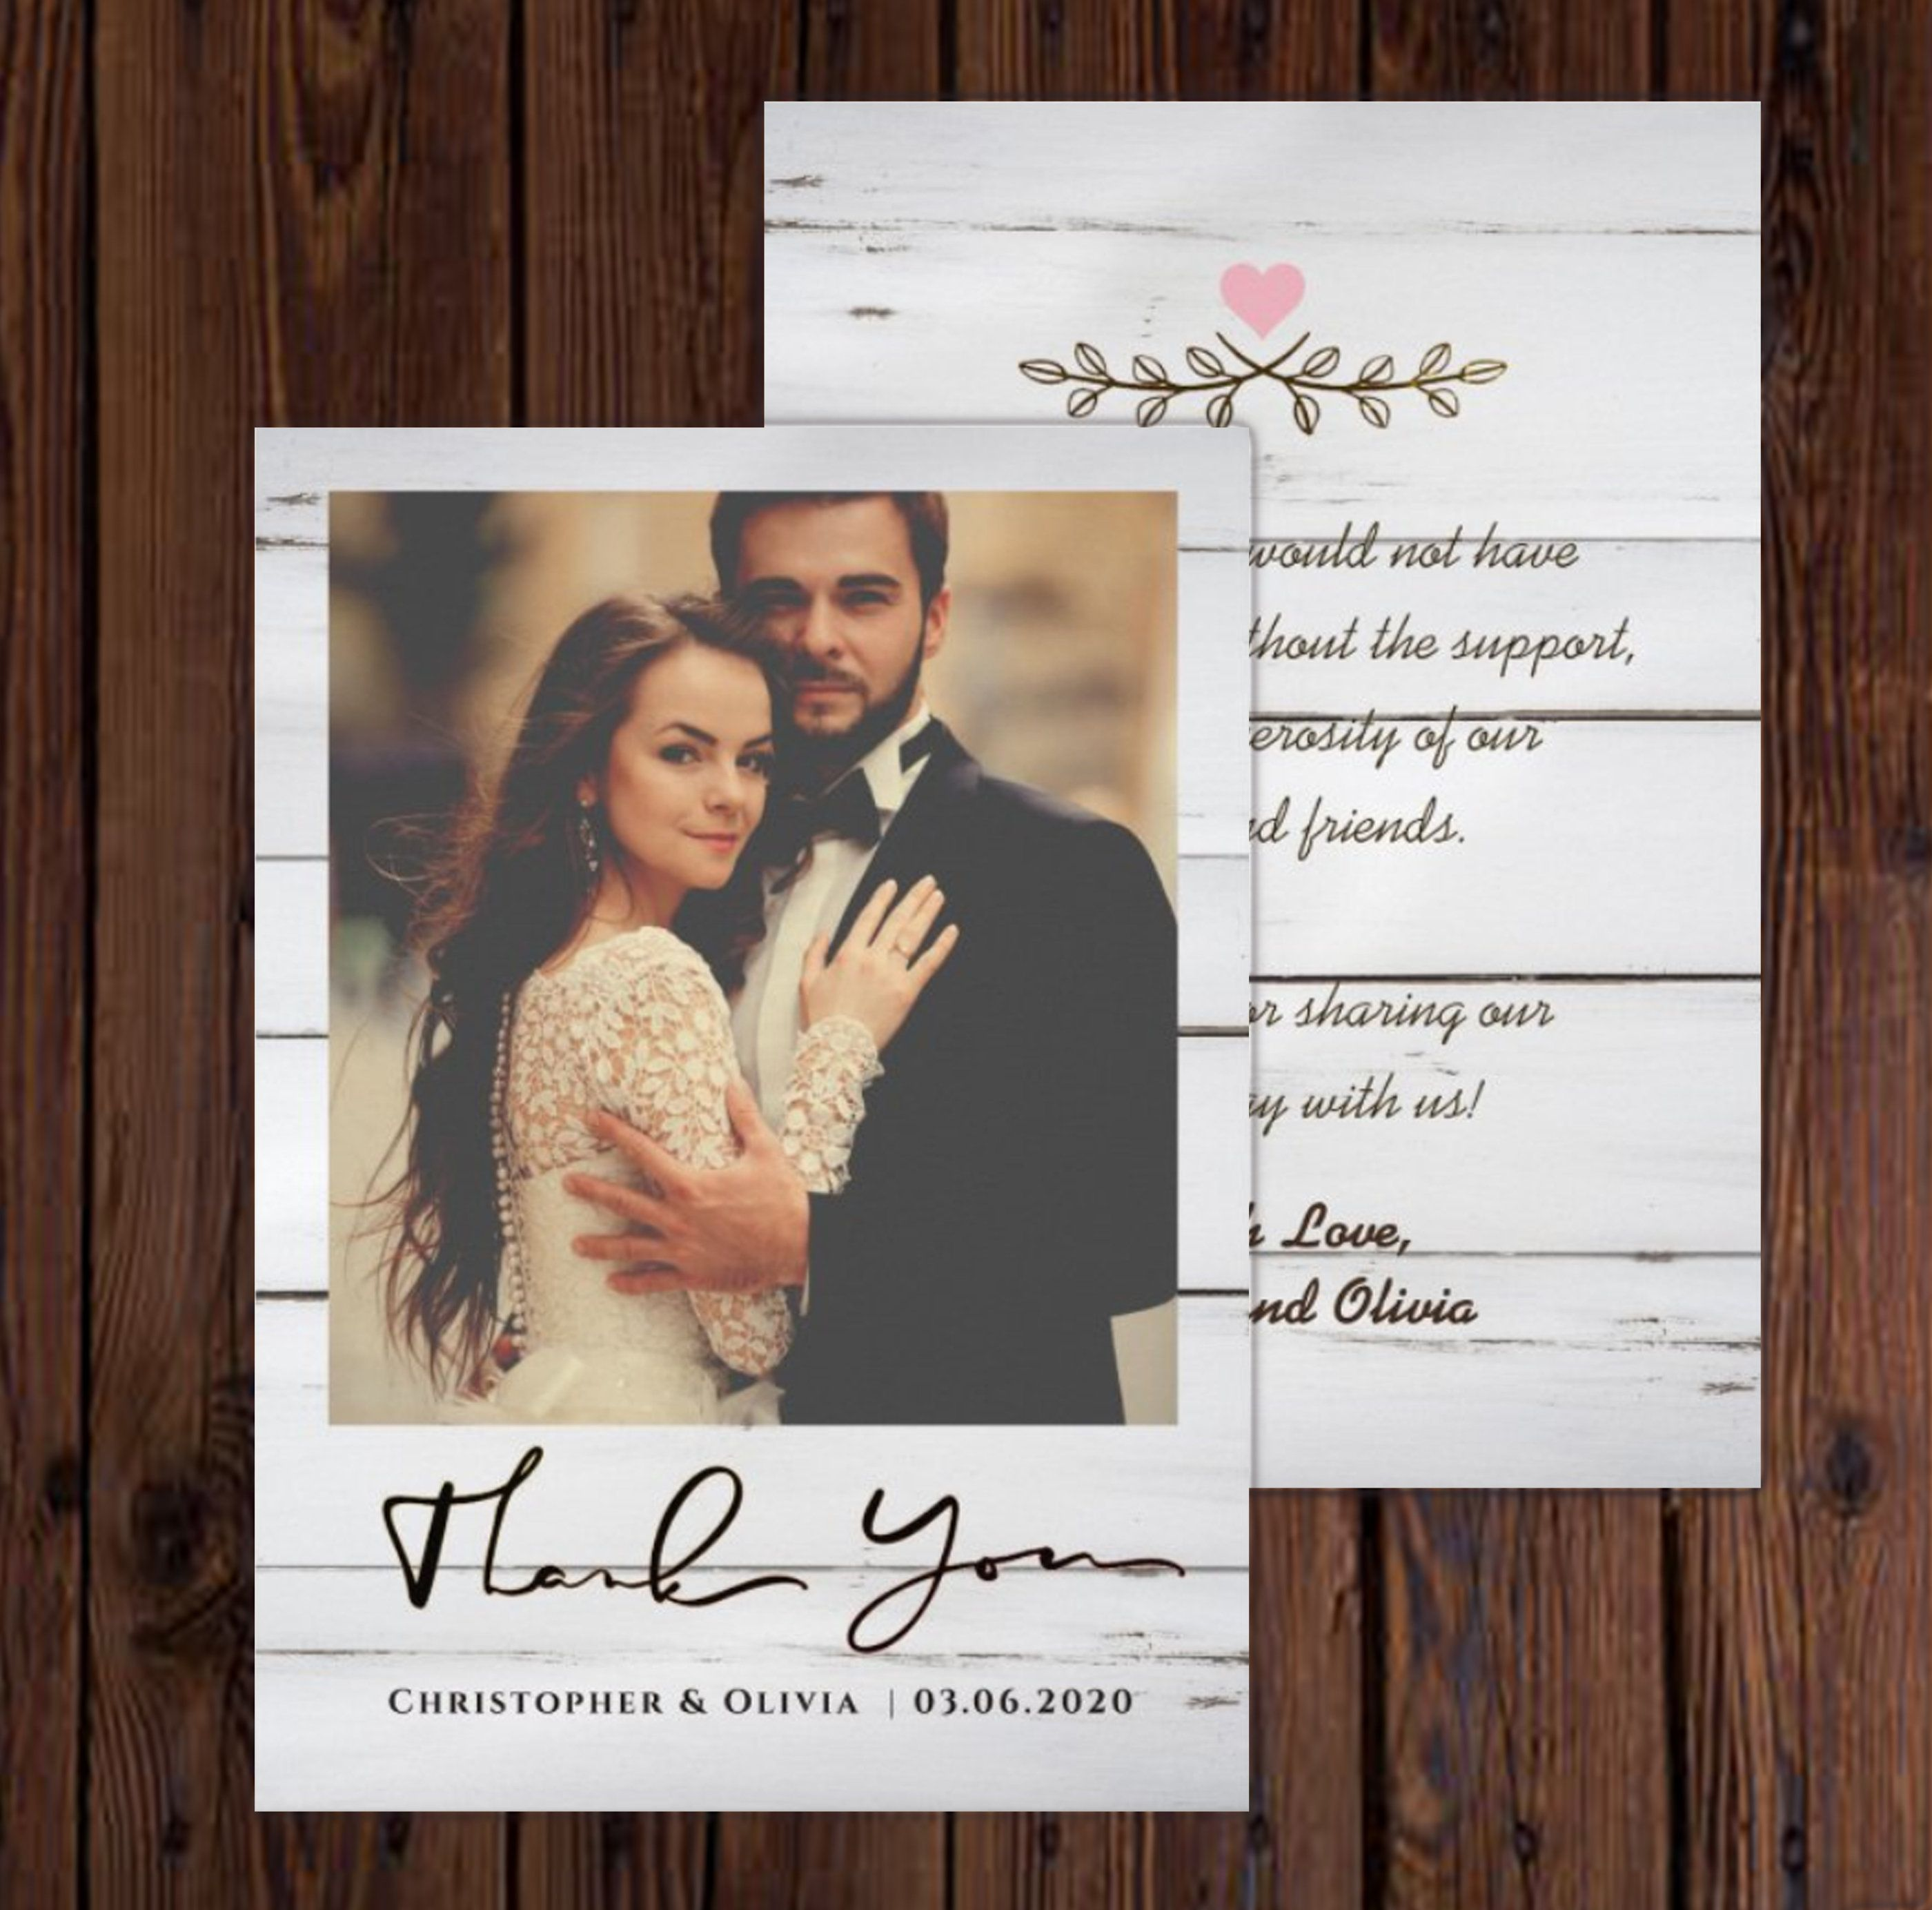 Rustic Wedding Thank You Cards With Photo Photo Thank You Etsy In 2020 Wedding Thank You Cards Wedding Thank You Rustic Wedding Cards